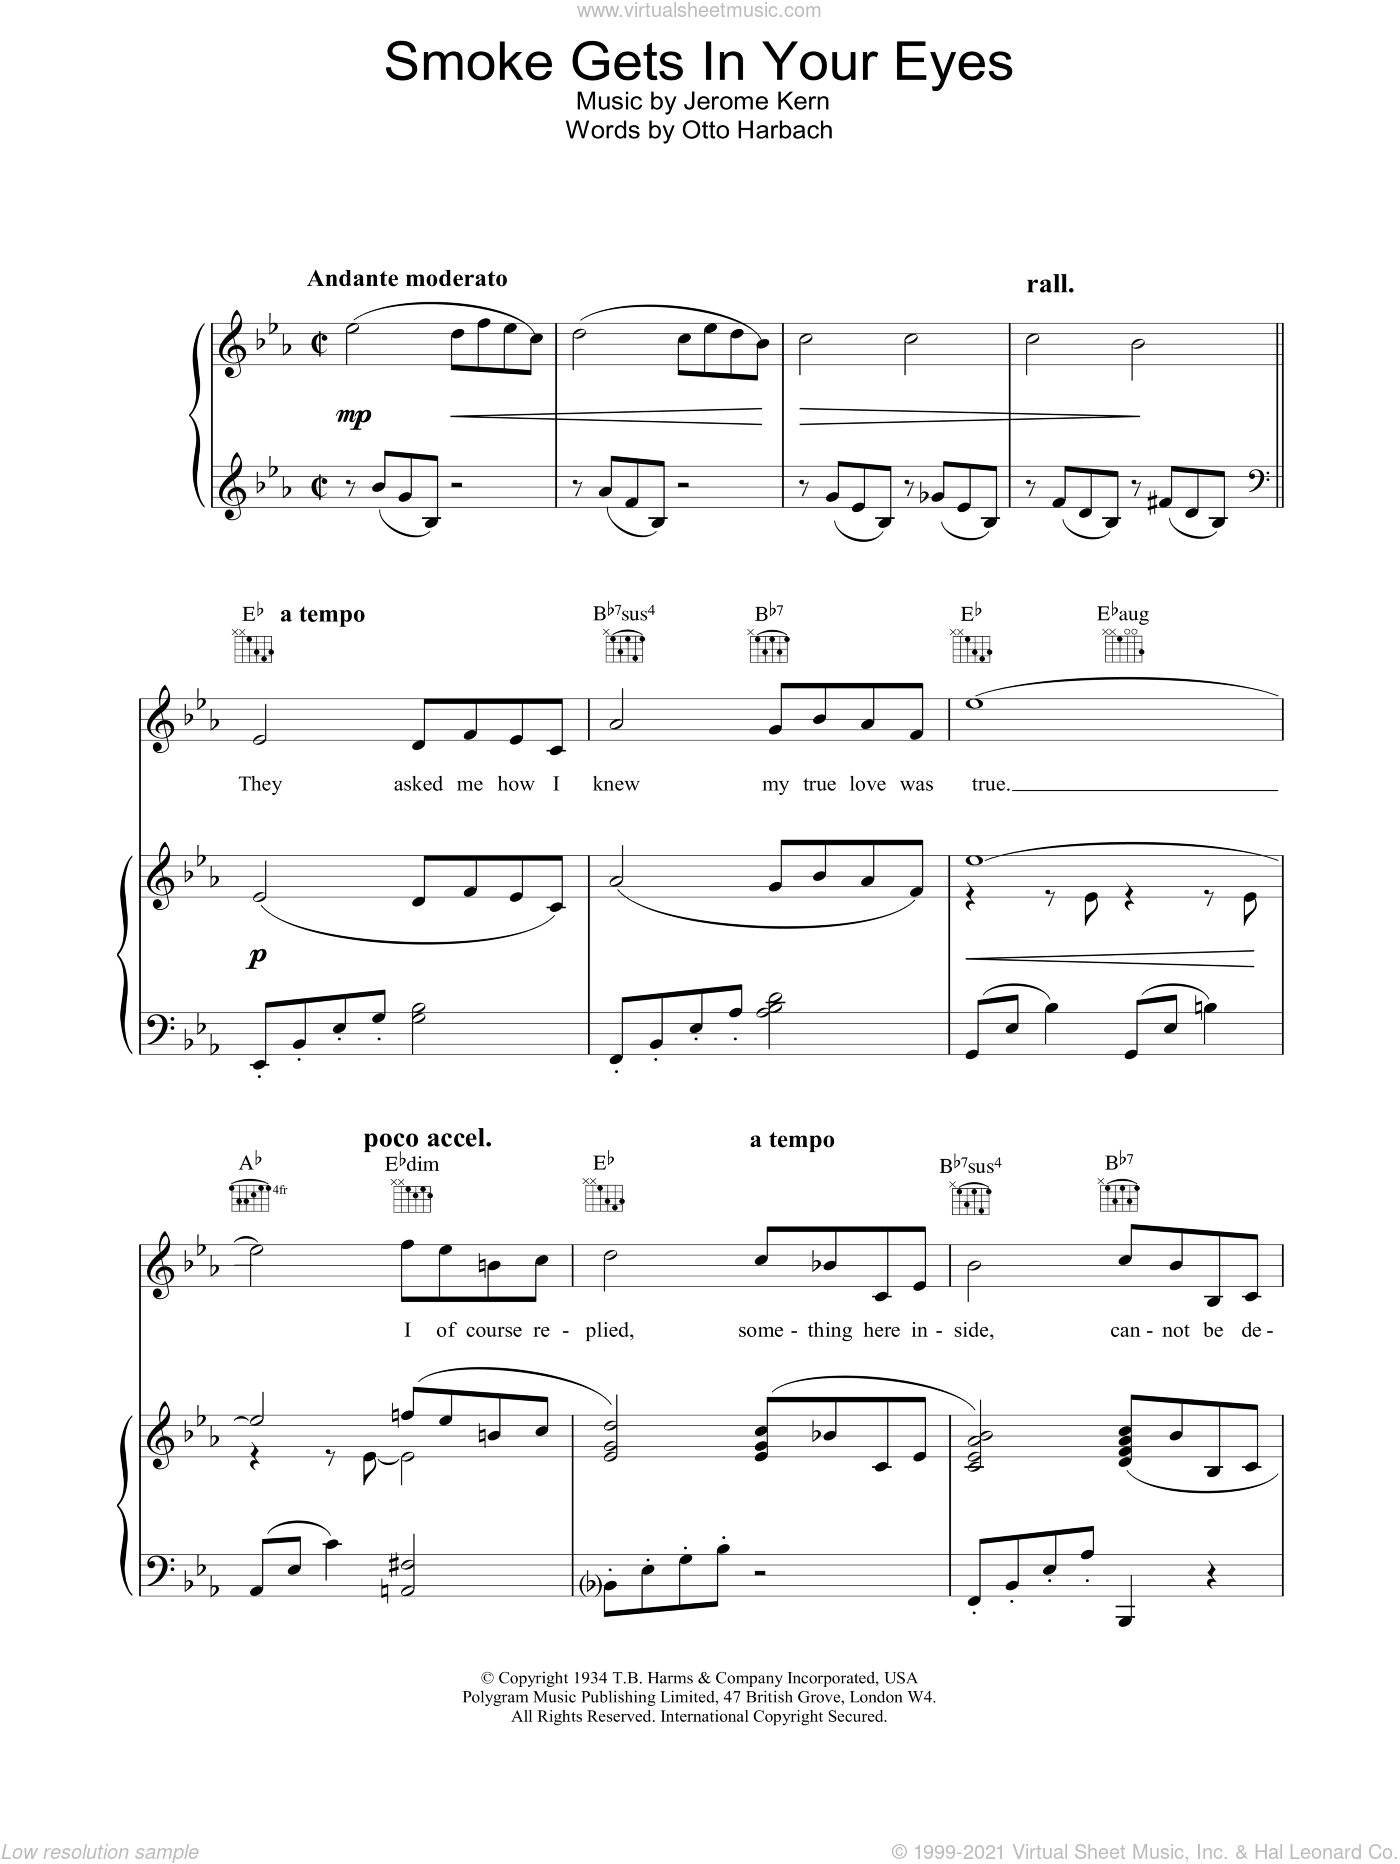 Smoke Gets In Your Eyes sheet music for voice, piano or guitar by Frank Sinatra, intermediate skill level